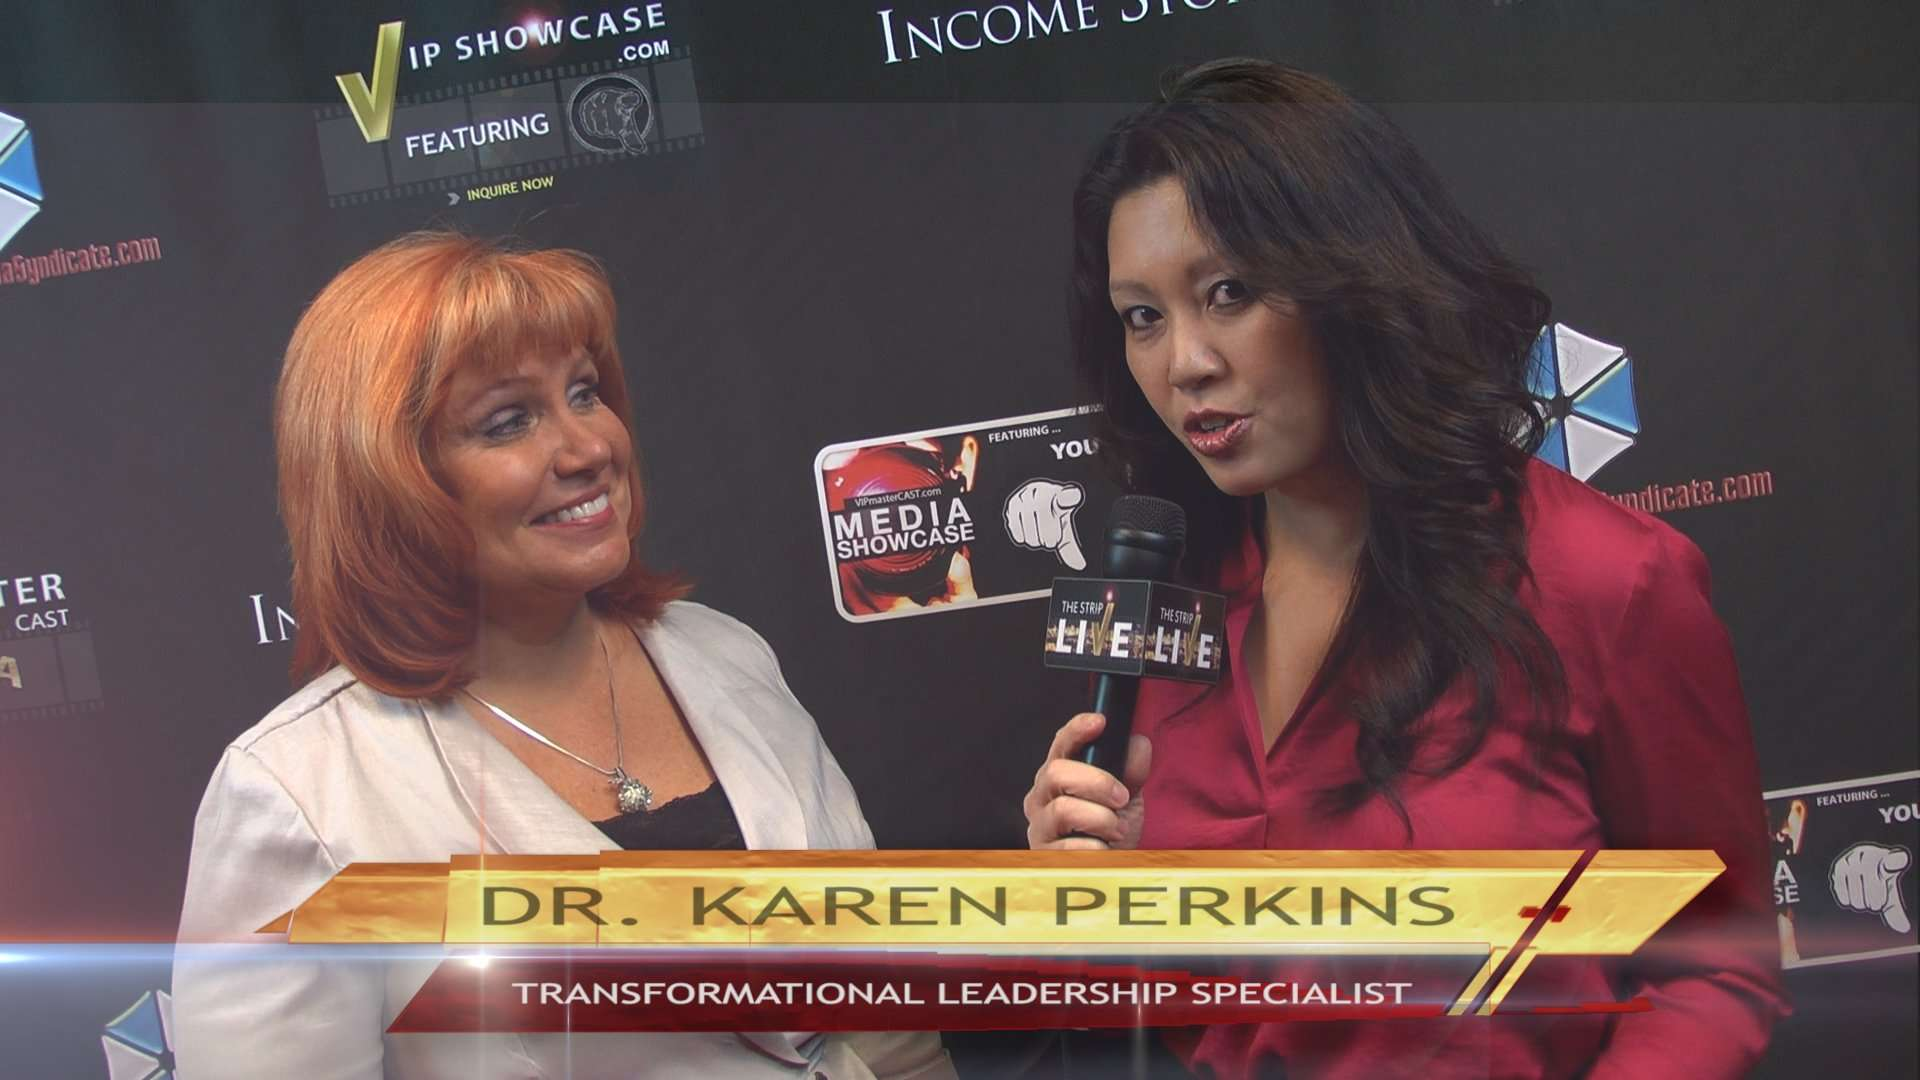 Emotional intelligence expert Dr. Karen Perkins claims knowing how to use emotions is the key to living well